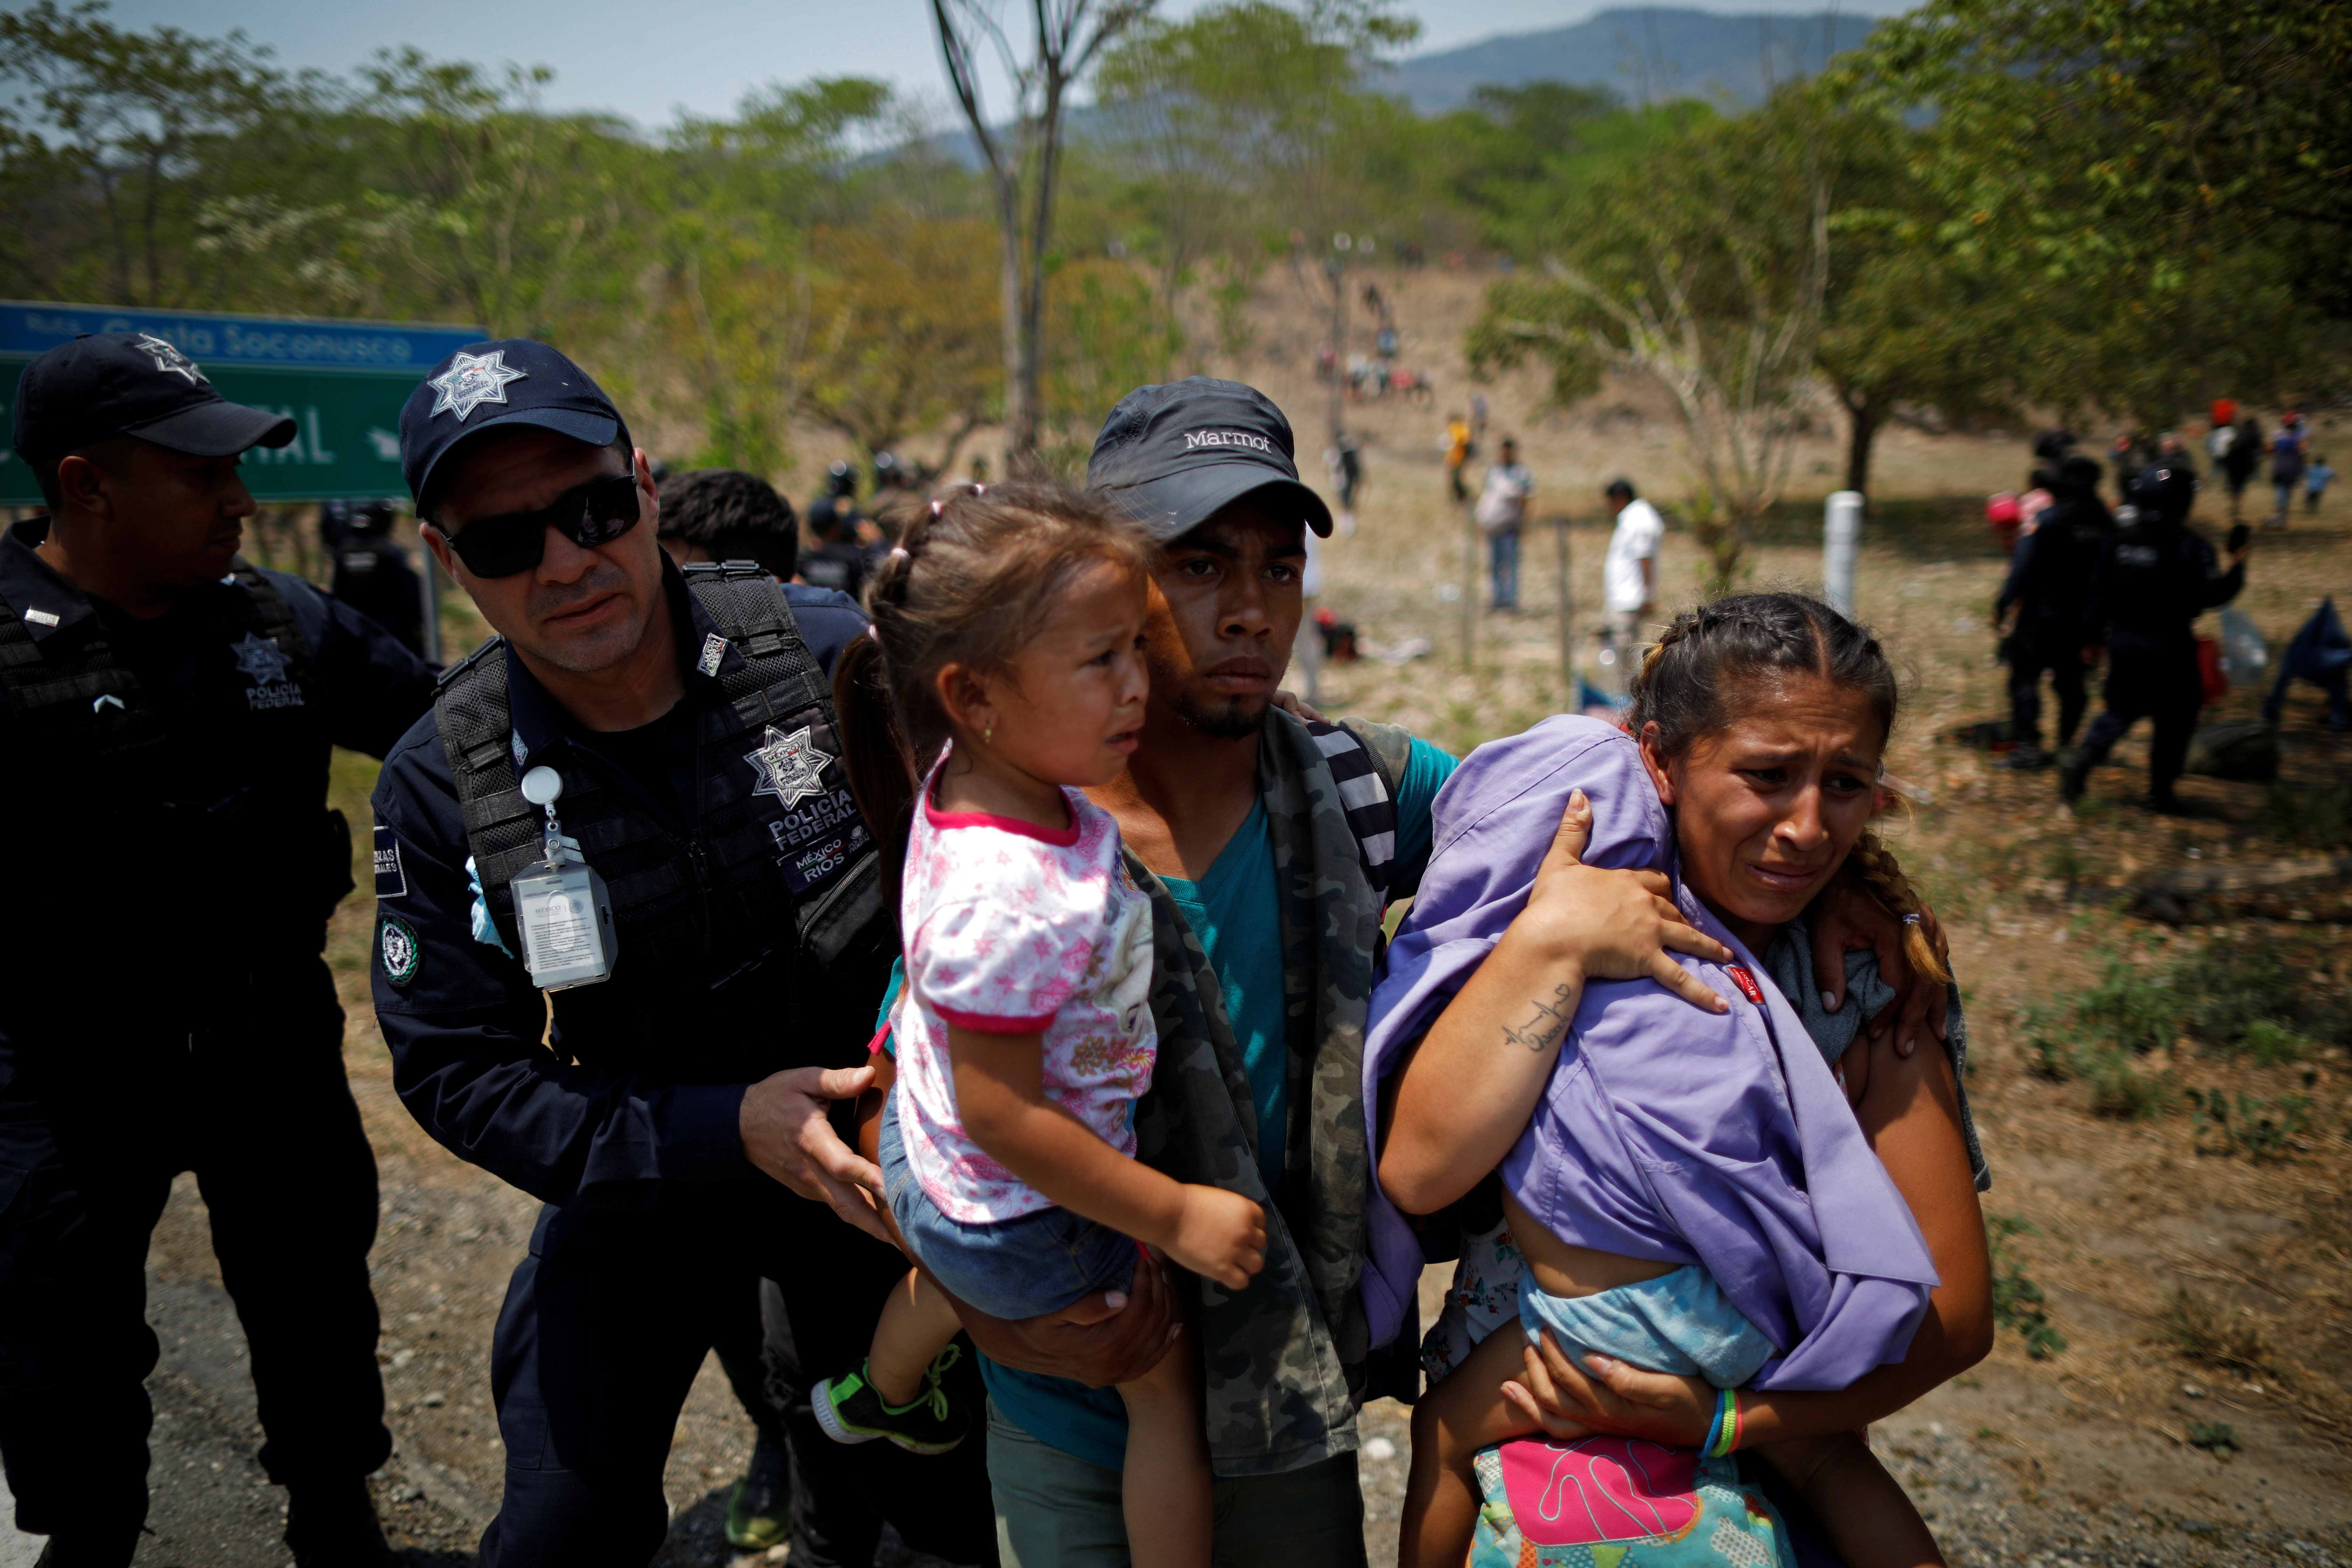 A family of Central American migrants is detained by Federal Police officers during a raid in their journey towards the United States, in Pijijiapan, Mexico April 22, 2019. REUTERS/Jose Cabezas